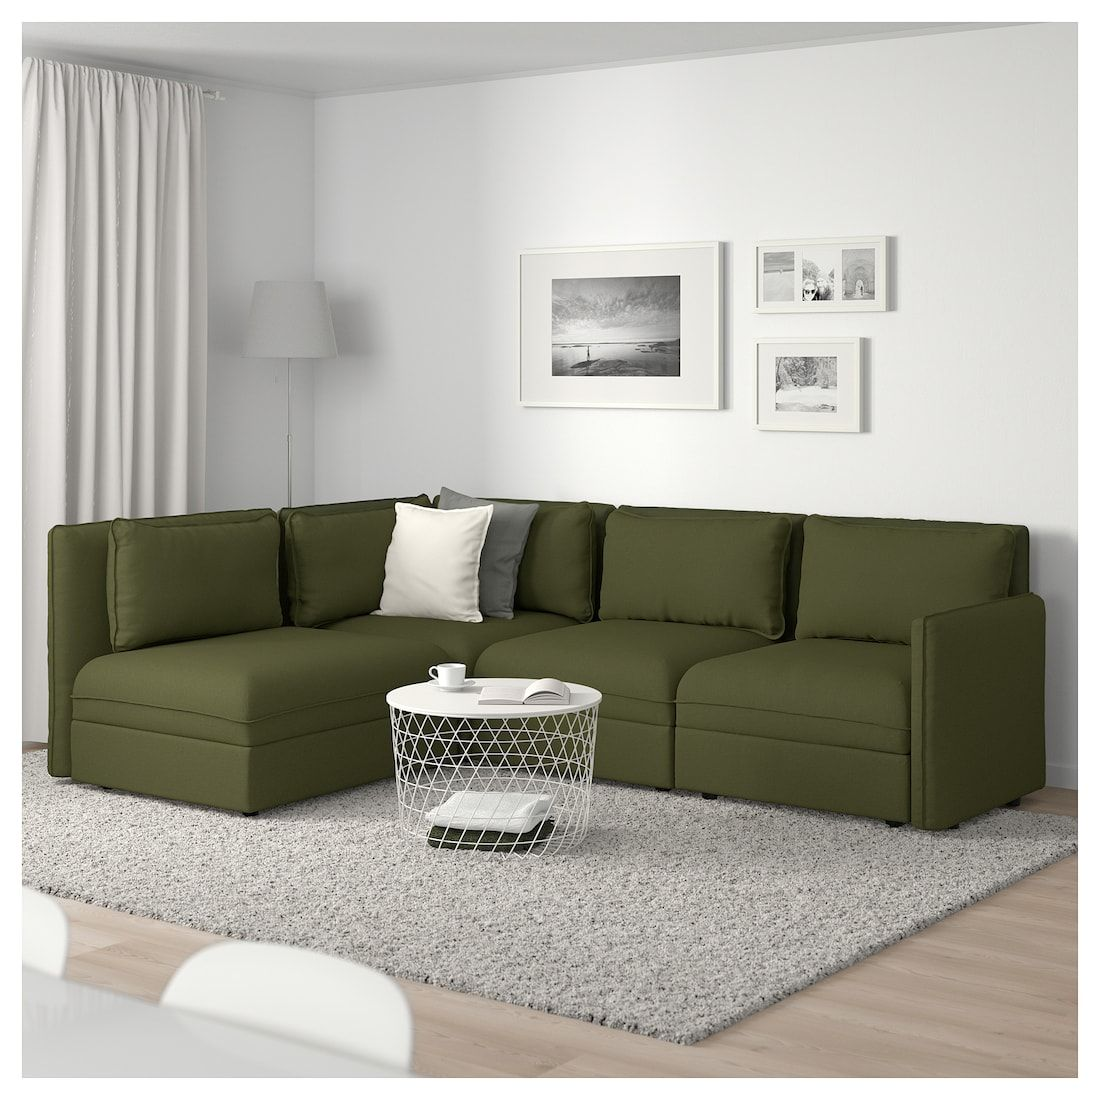 Vallentuna Modular Corner Sofa 3 Seat With Storage Orrsta Olive Green Ikea Modular Corner Sofa Vallentuna Green Couch Living Room #olive #green #couch #living #room